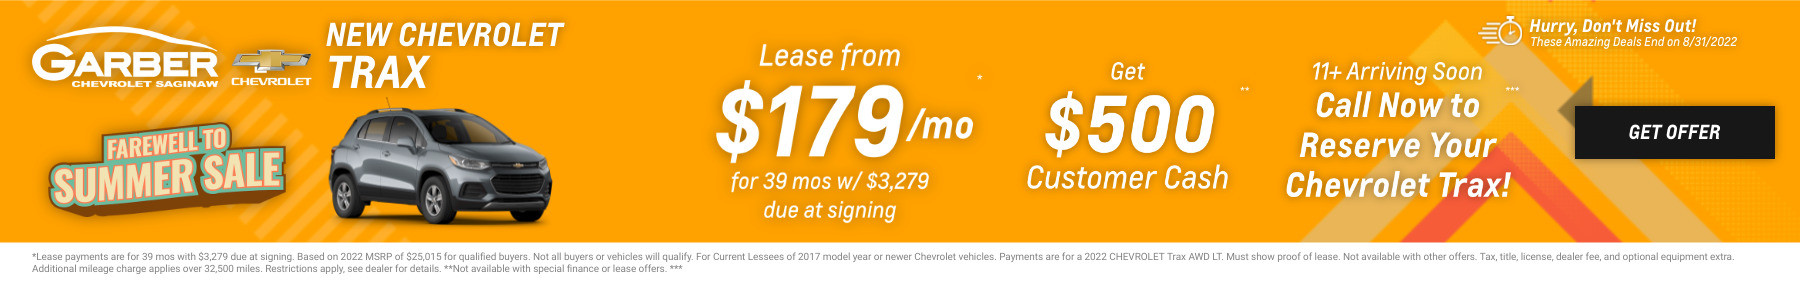 New Chevrolet Tax Current Deals and Offers in Saginaw, MI